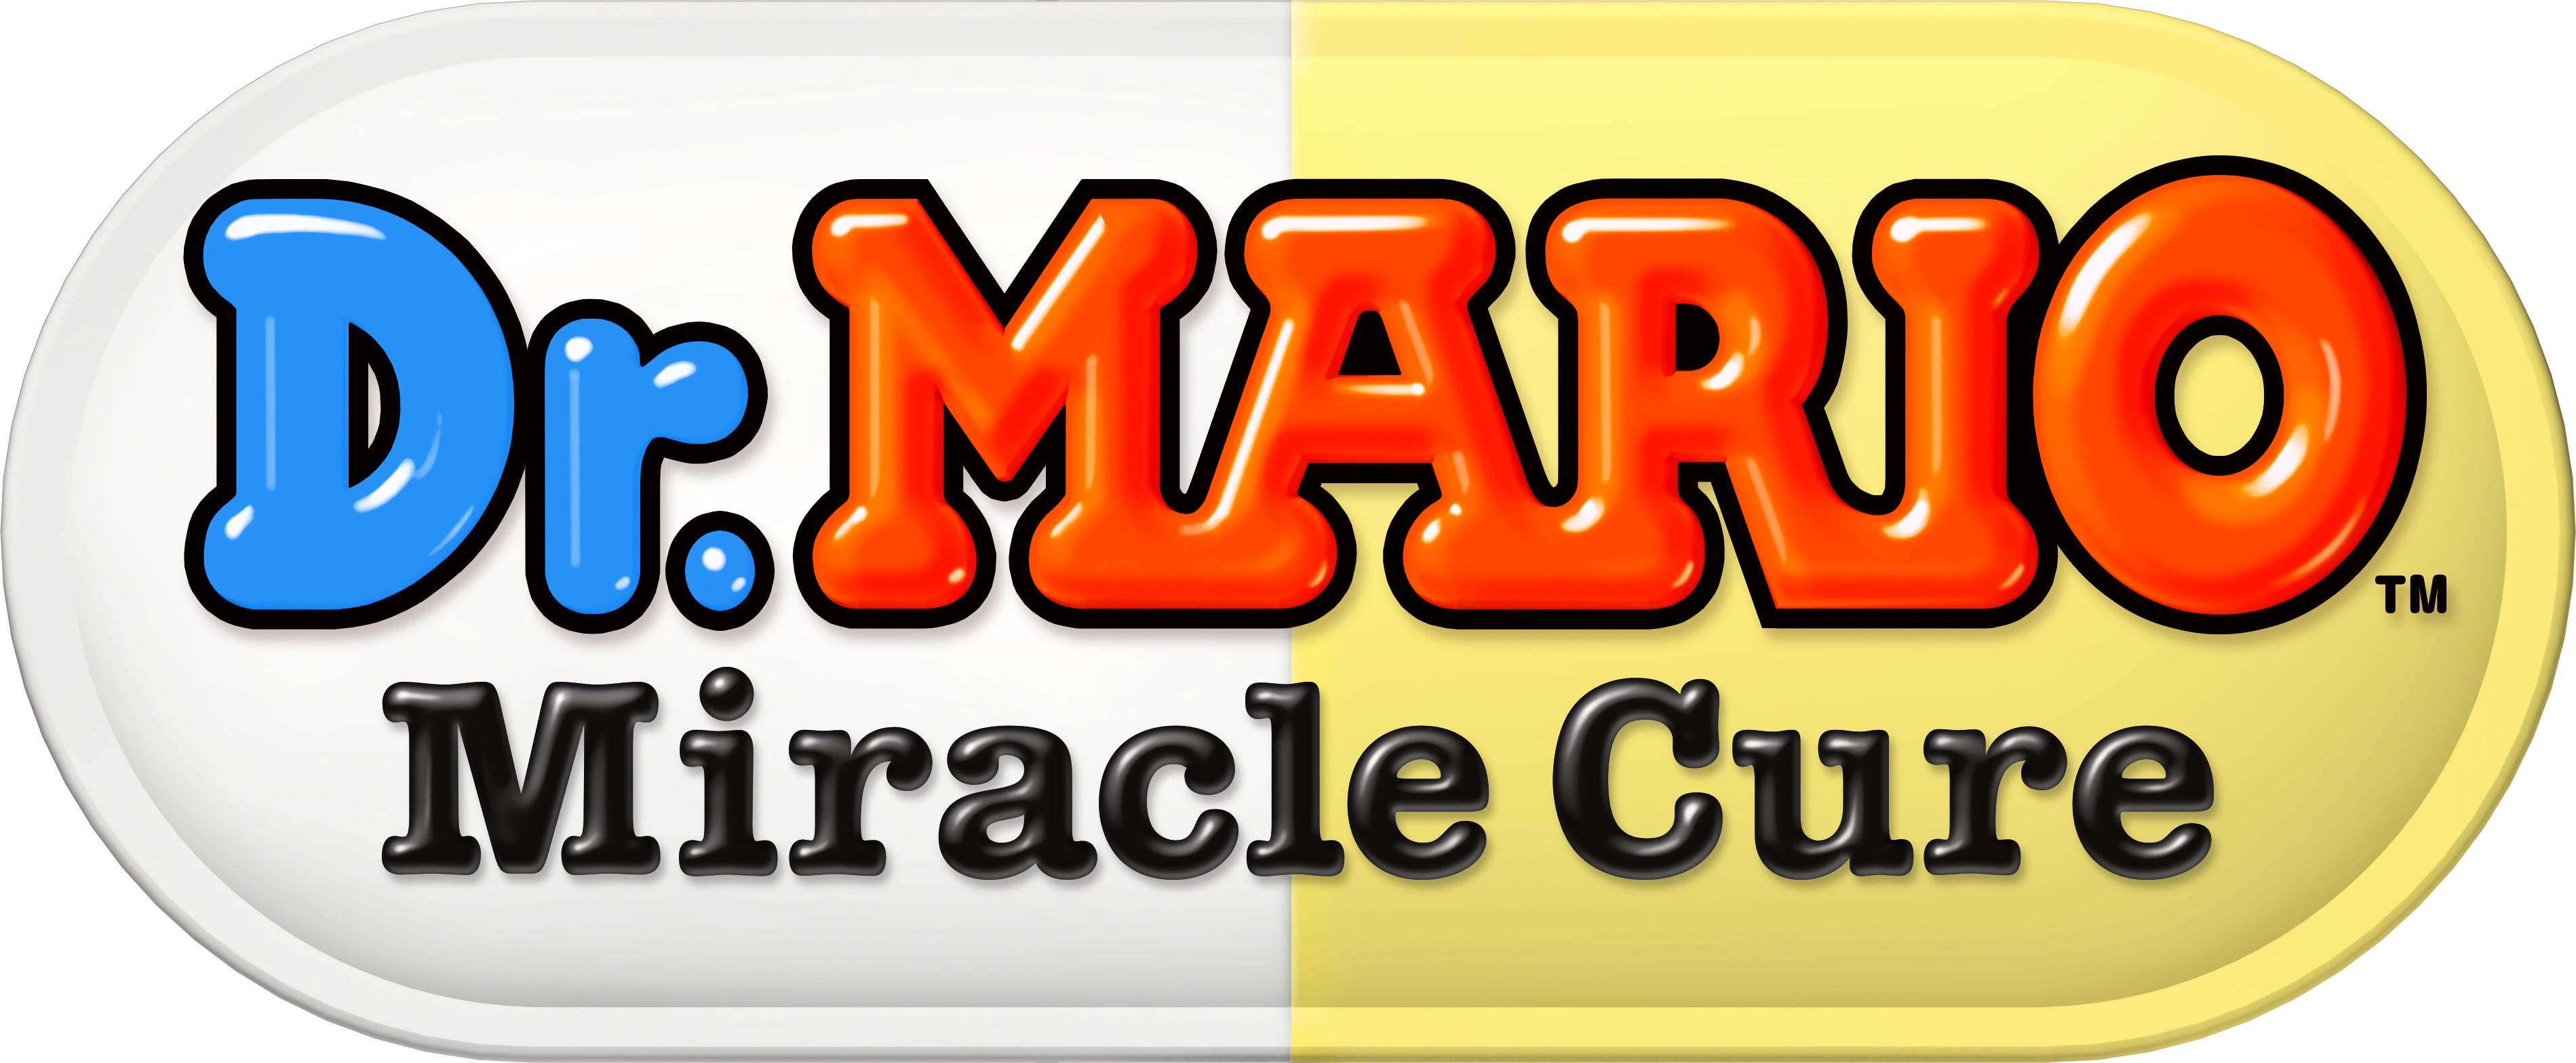 Dr. Mario: Miracle Cure/Galerie